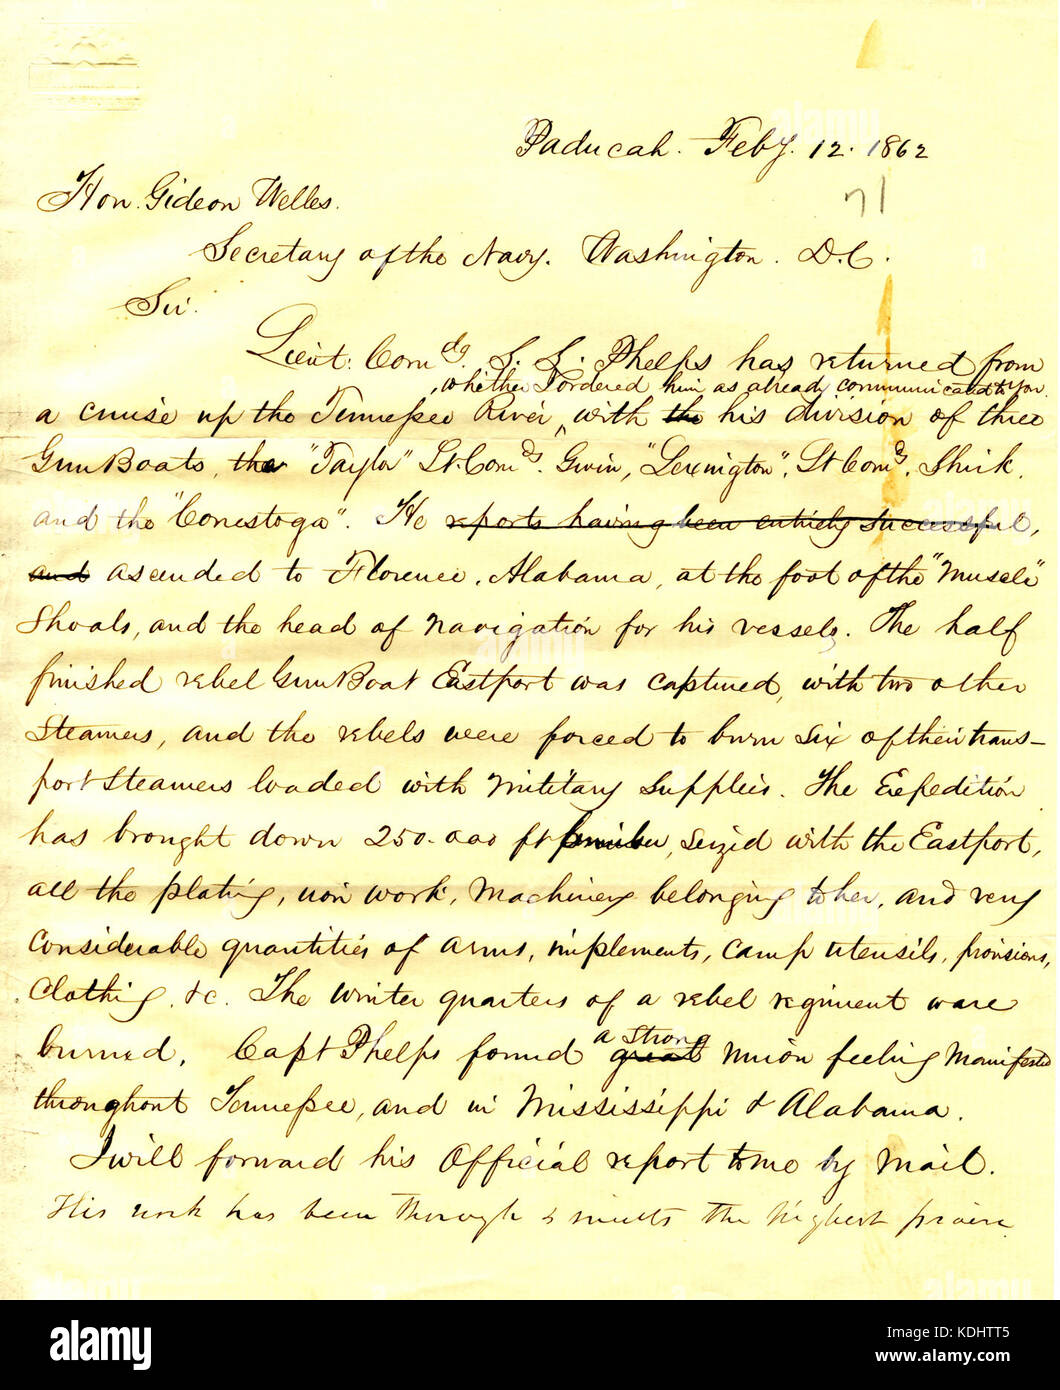 Letter to Gideon Welles, February 12, 1862 - Stock Image